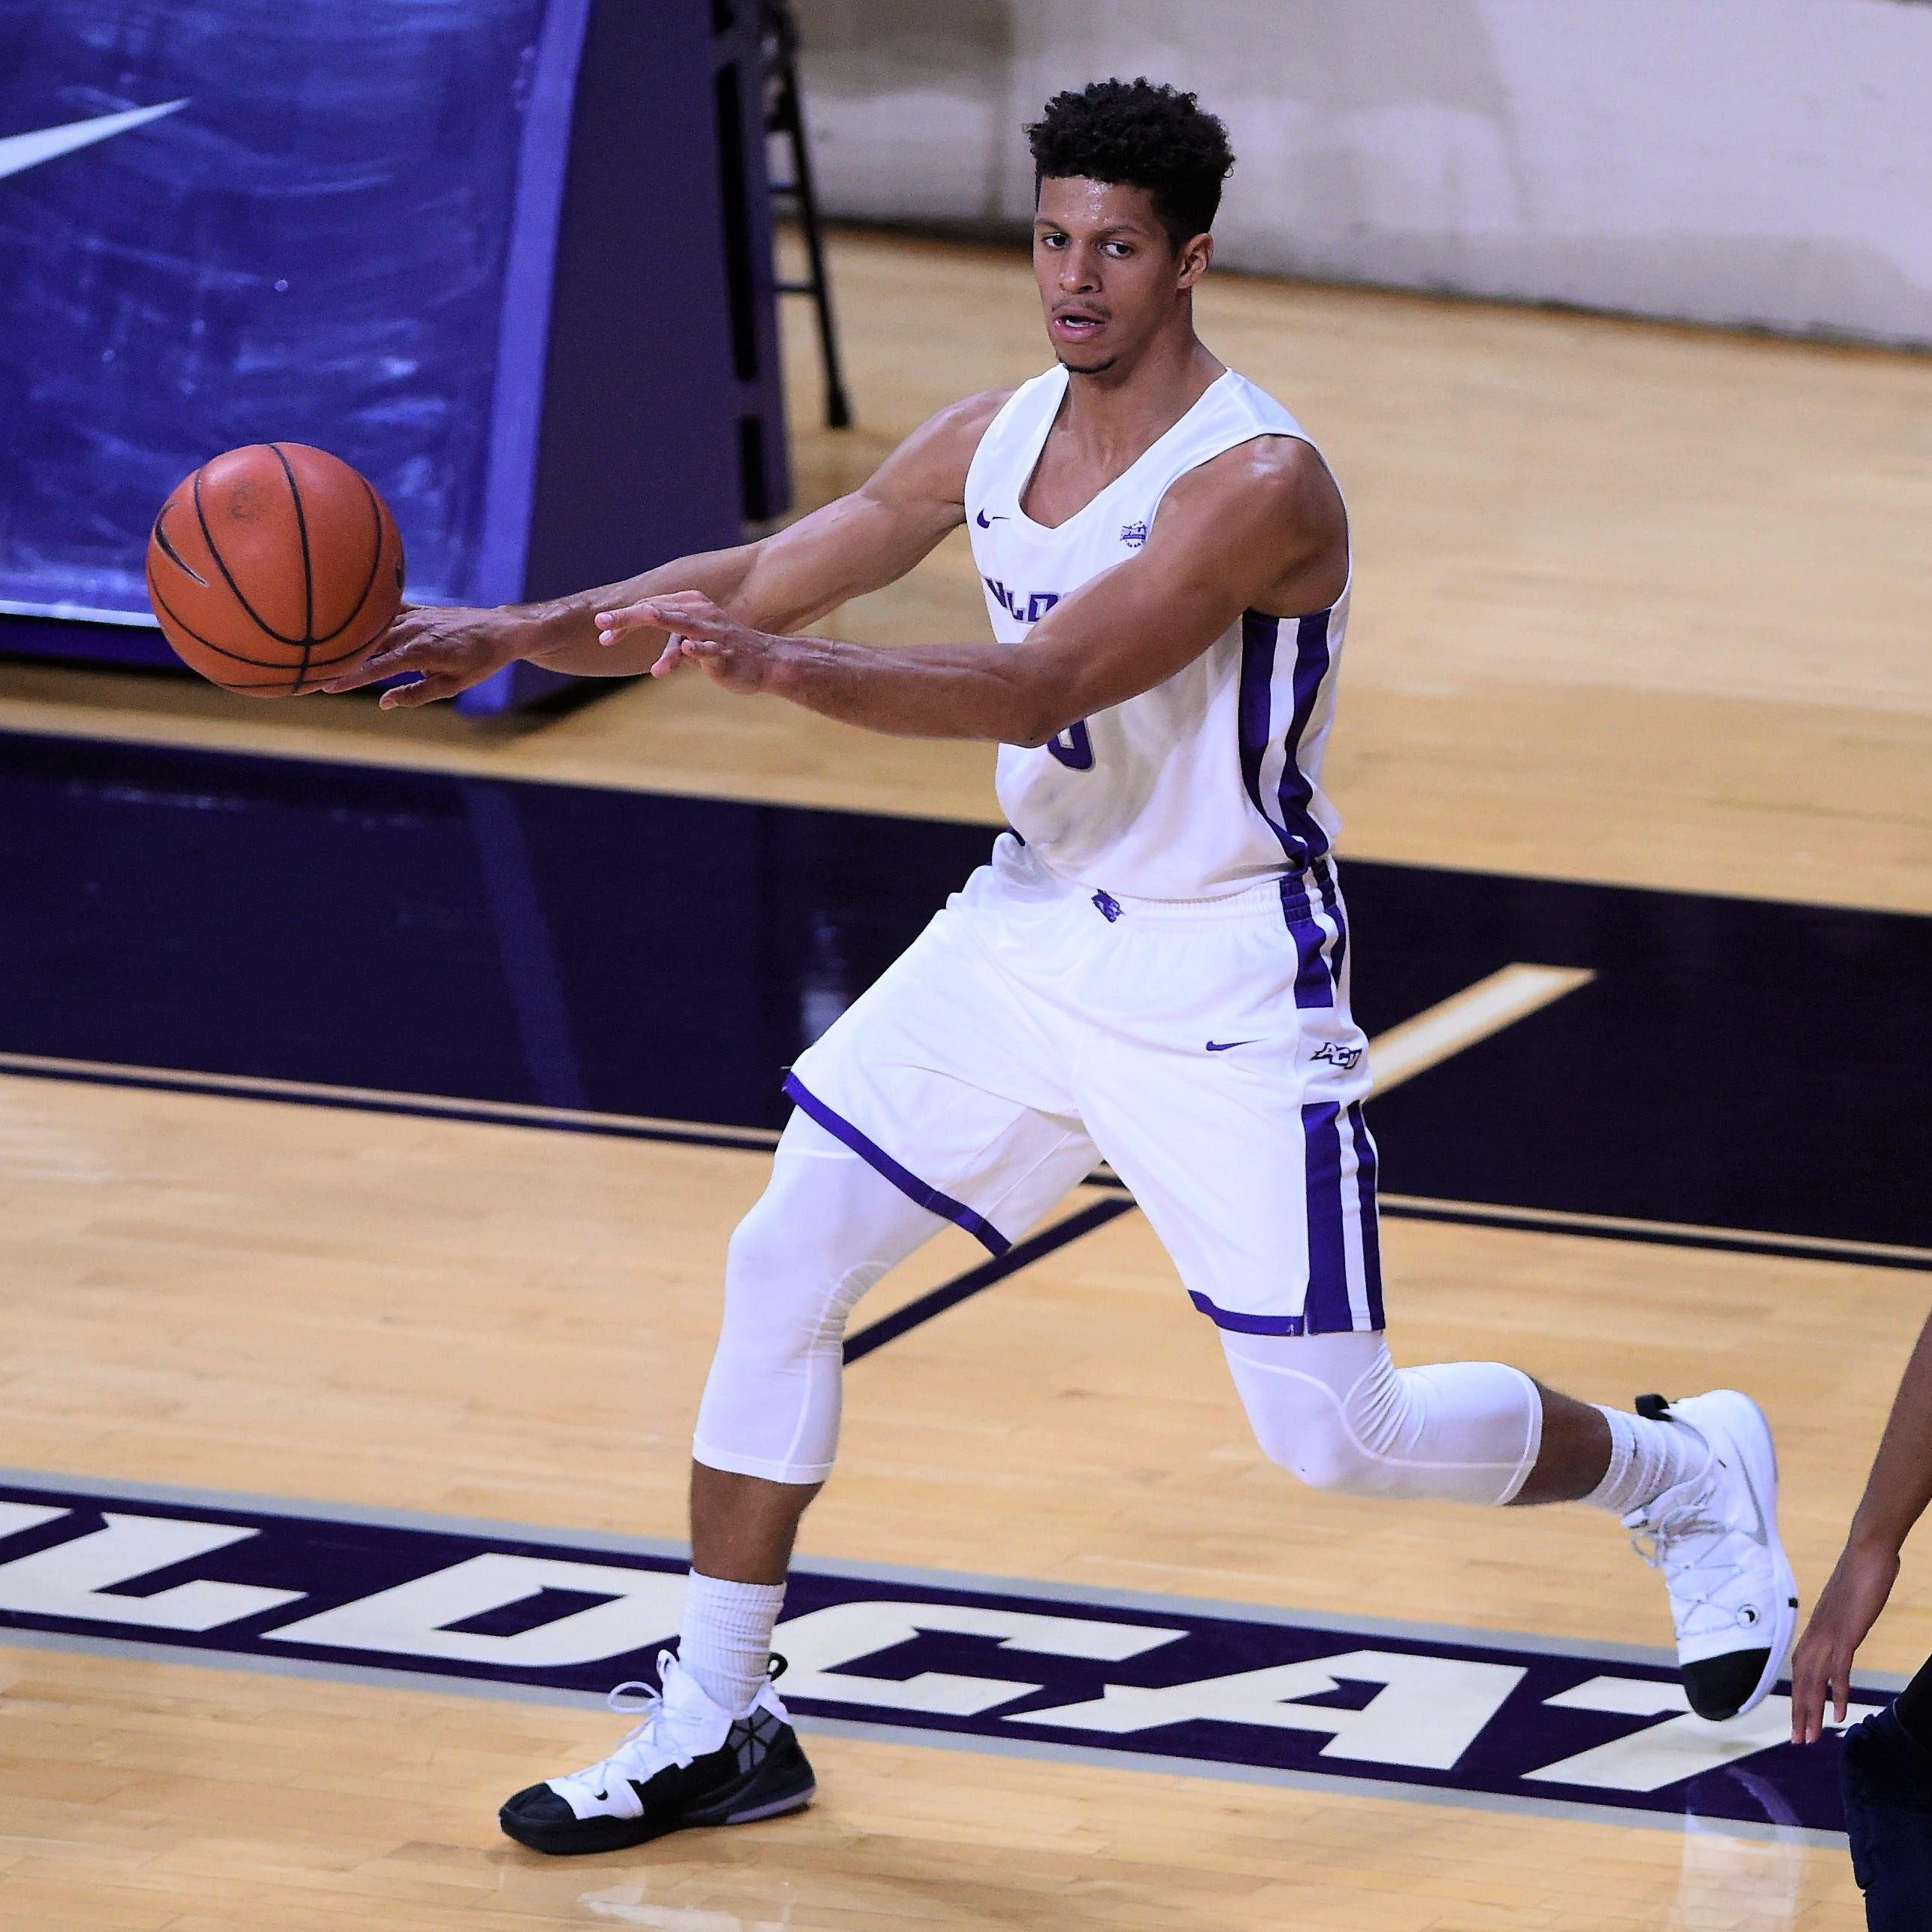 Southland Tournament 2019: How to watch Abilene Christian, New Orleans on TV, live stream